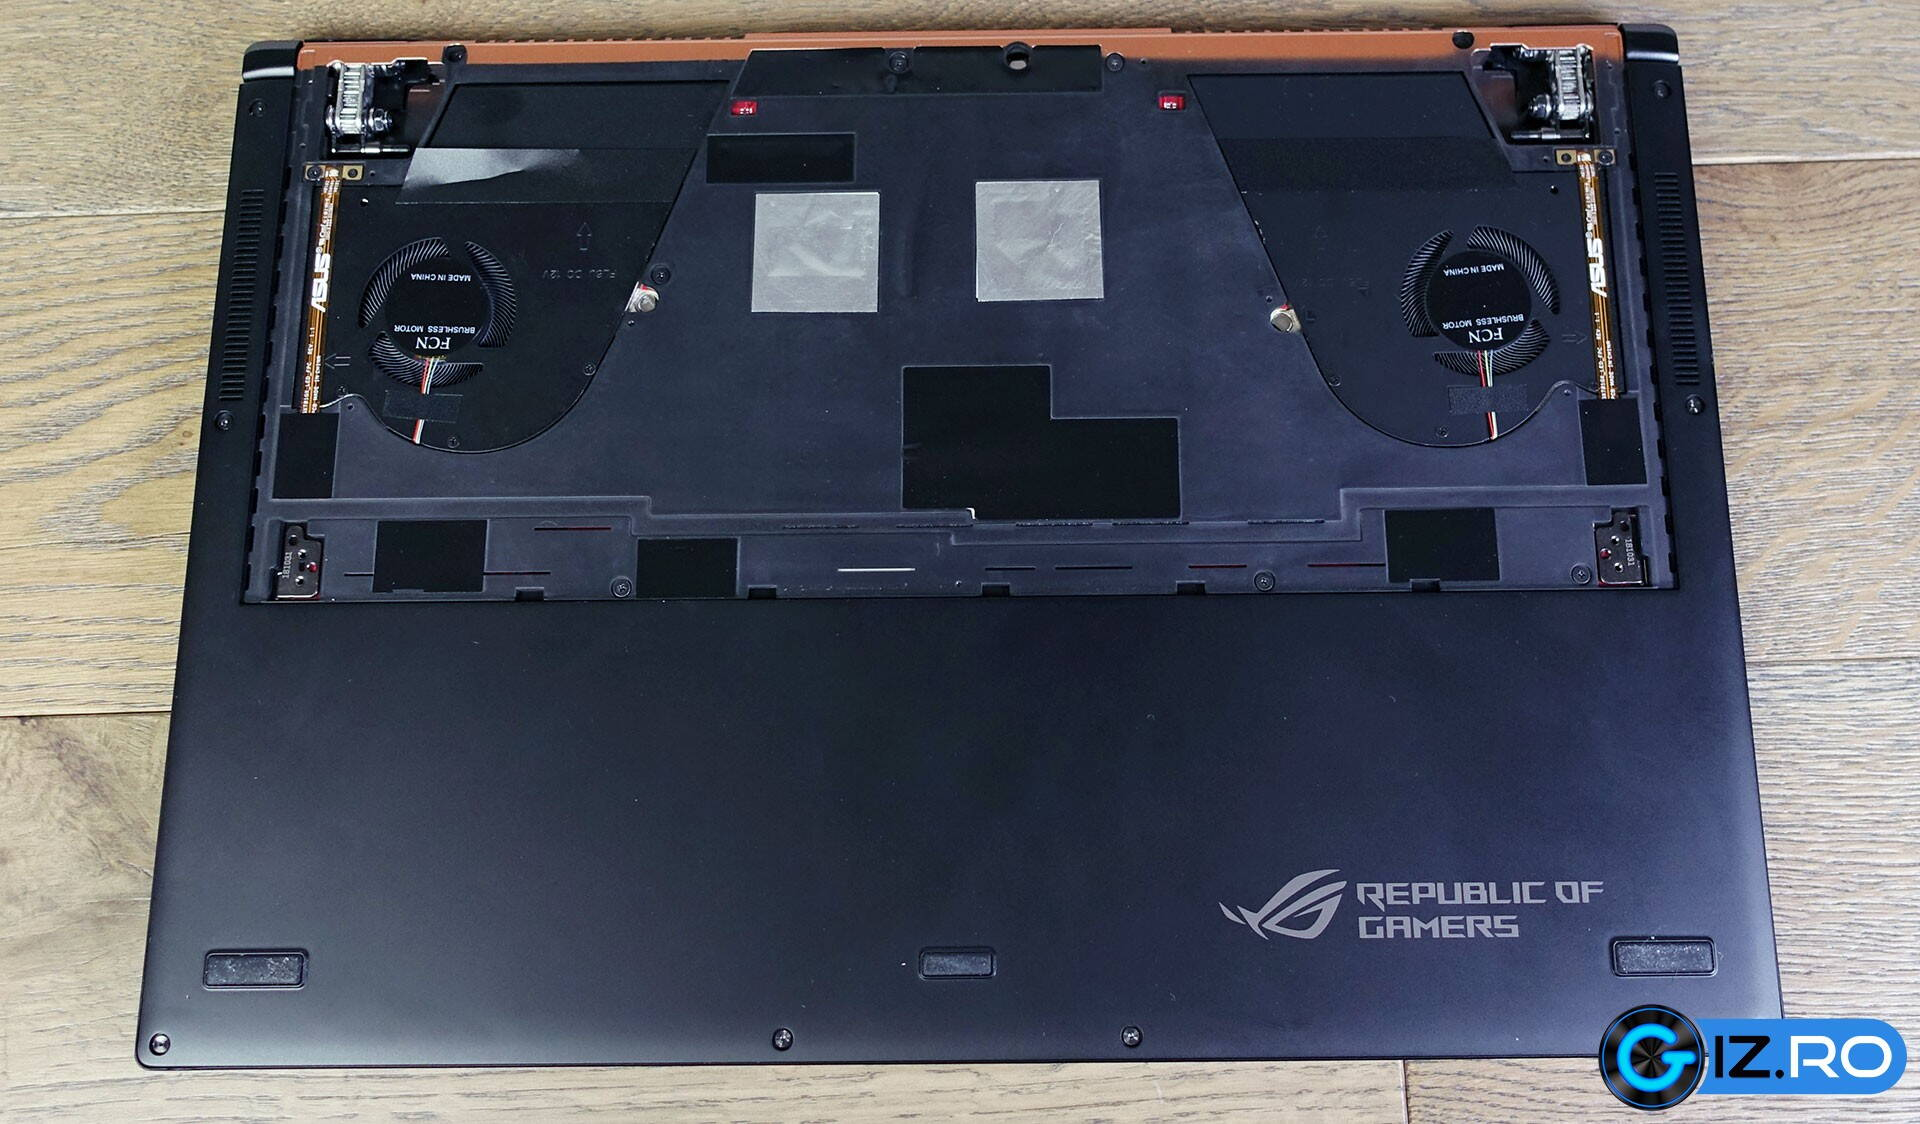 asus-rog-zephyrus-gx701-back-internal